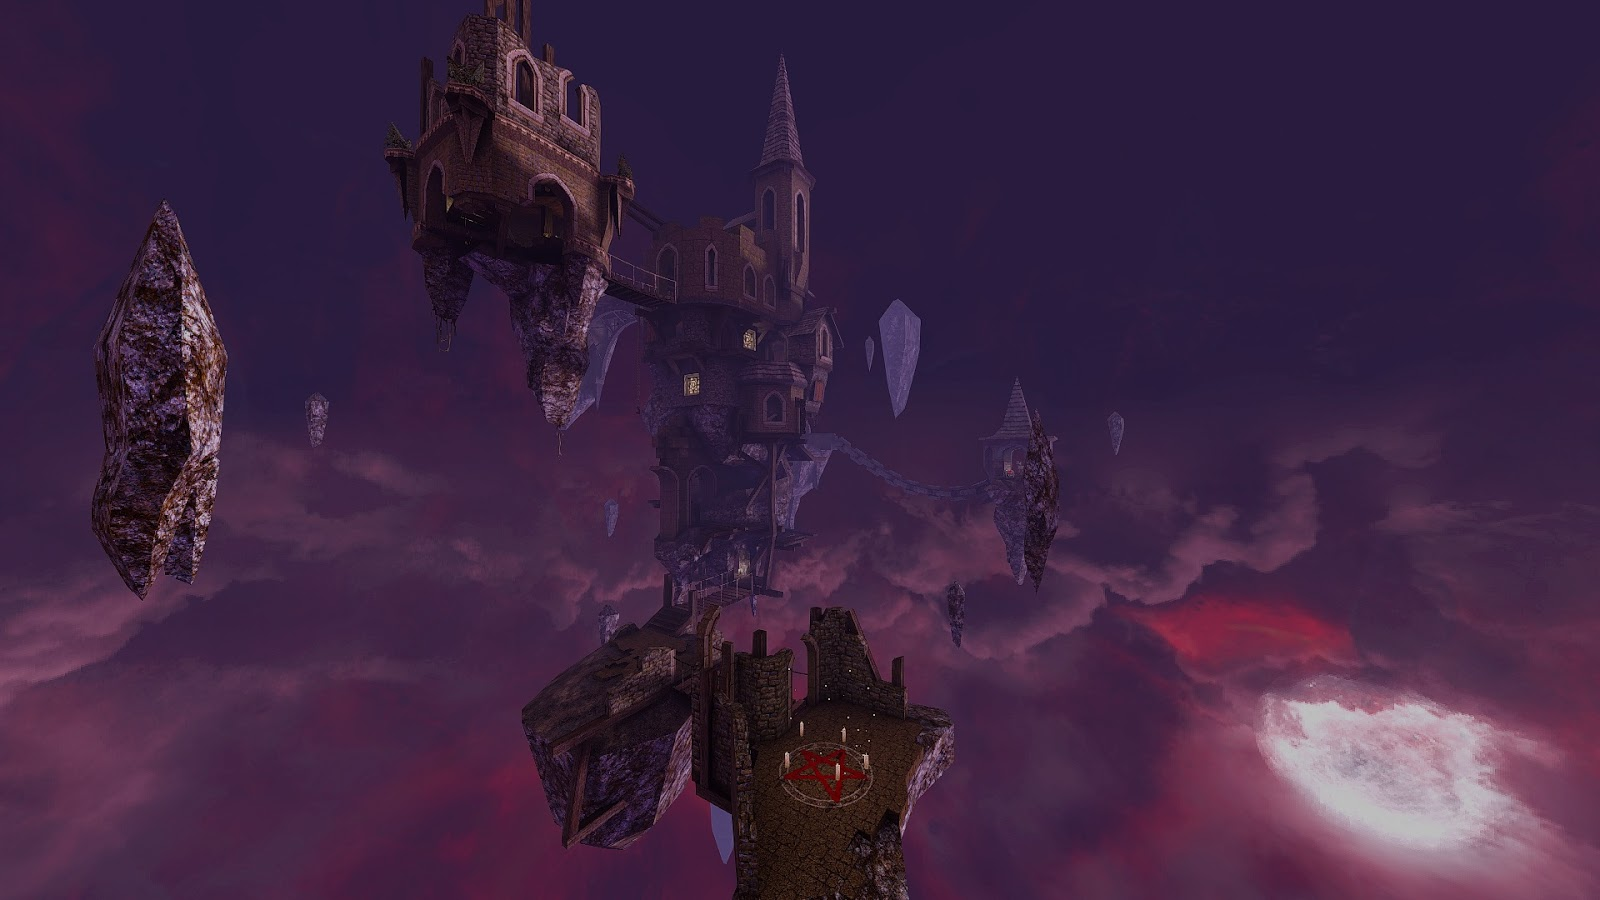 quake arcane dimensions the gorgeous the end map bathing in glorious